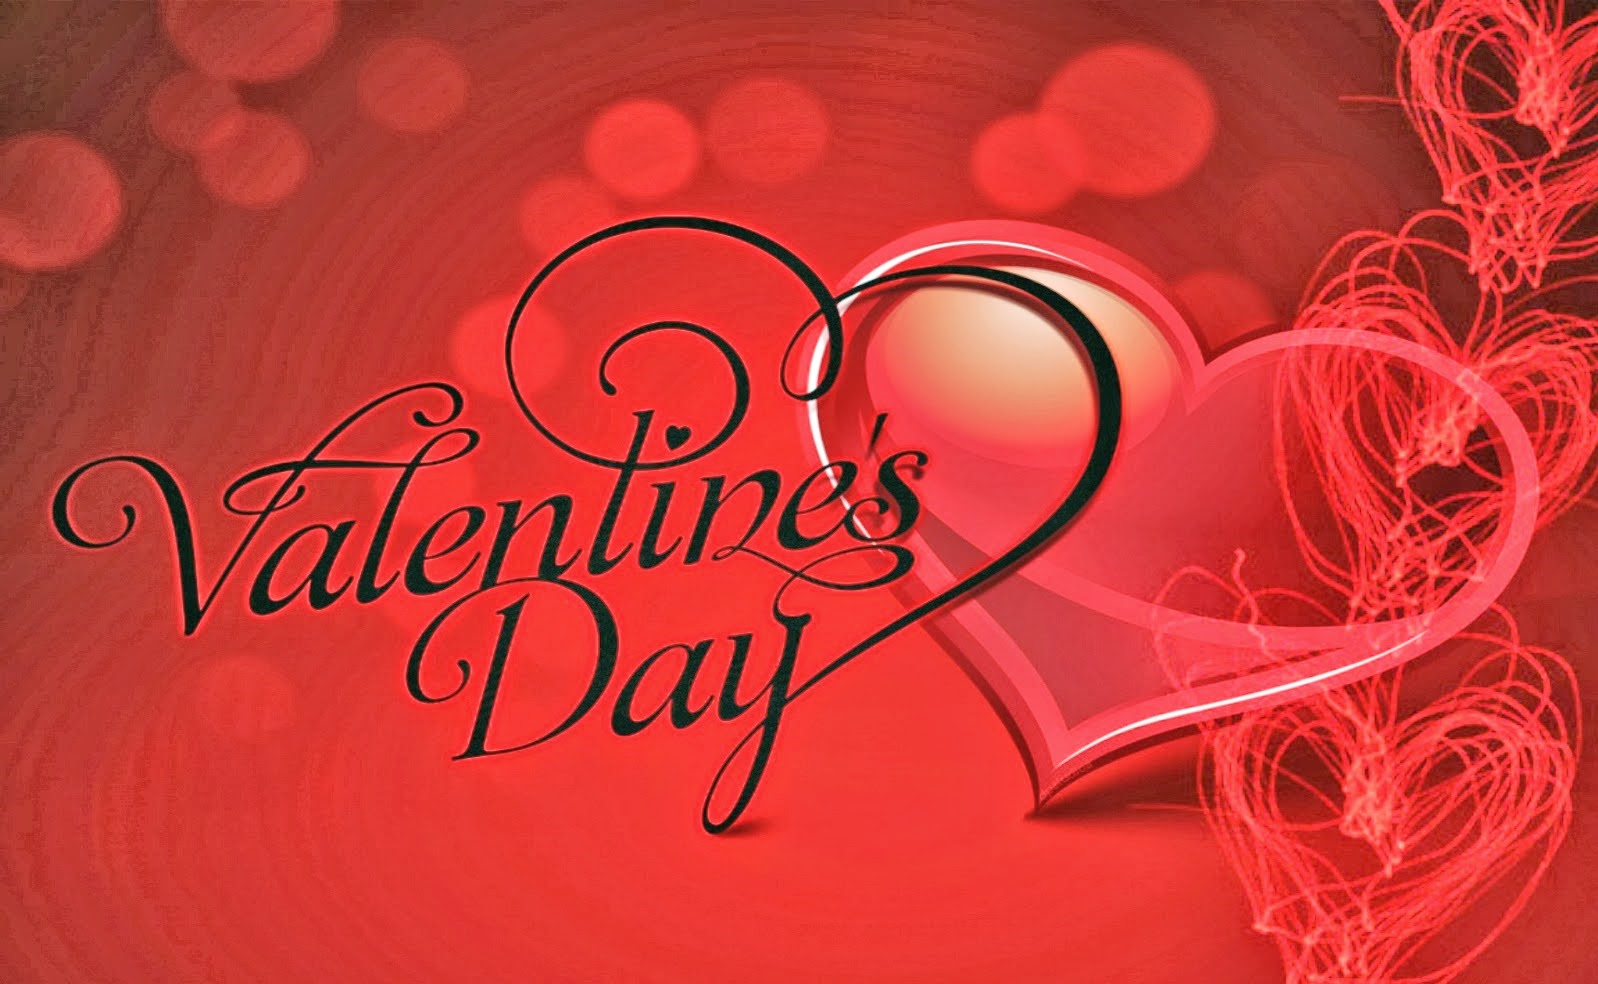 Happy Valentines day 2015 Greetings Quotes in English | Valentines.